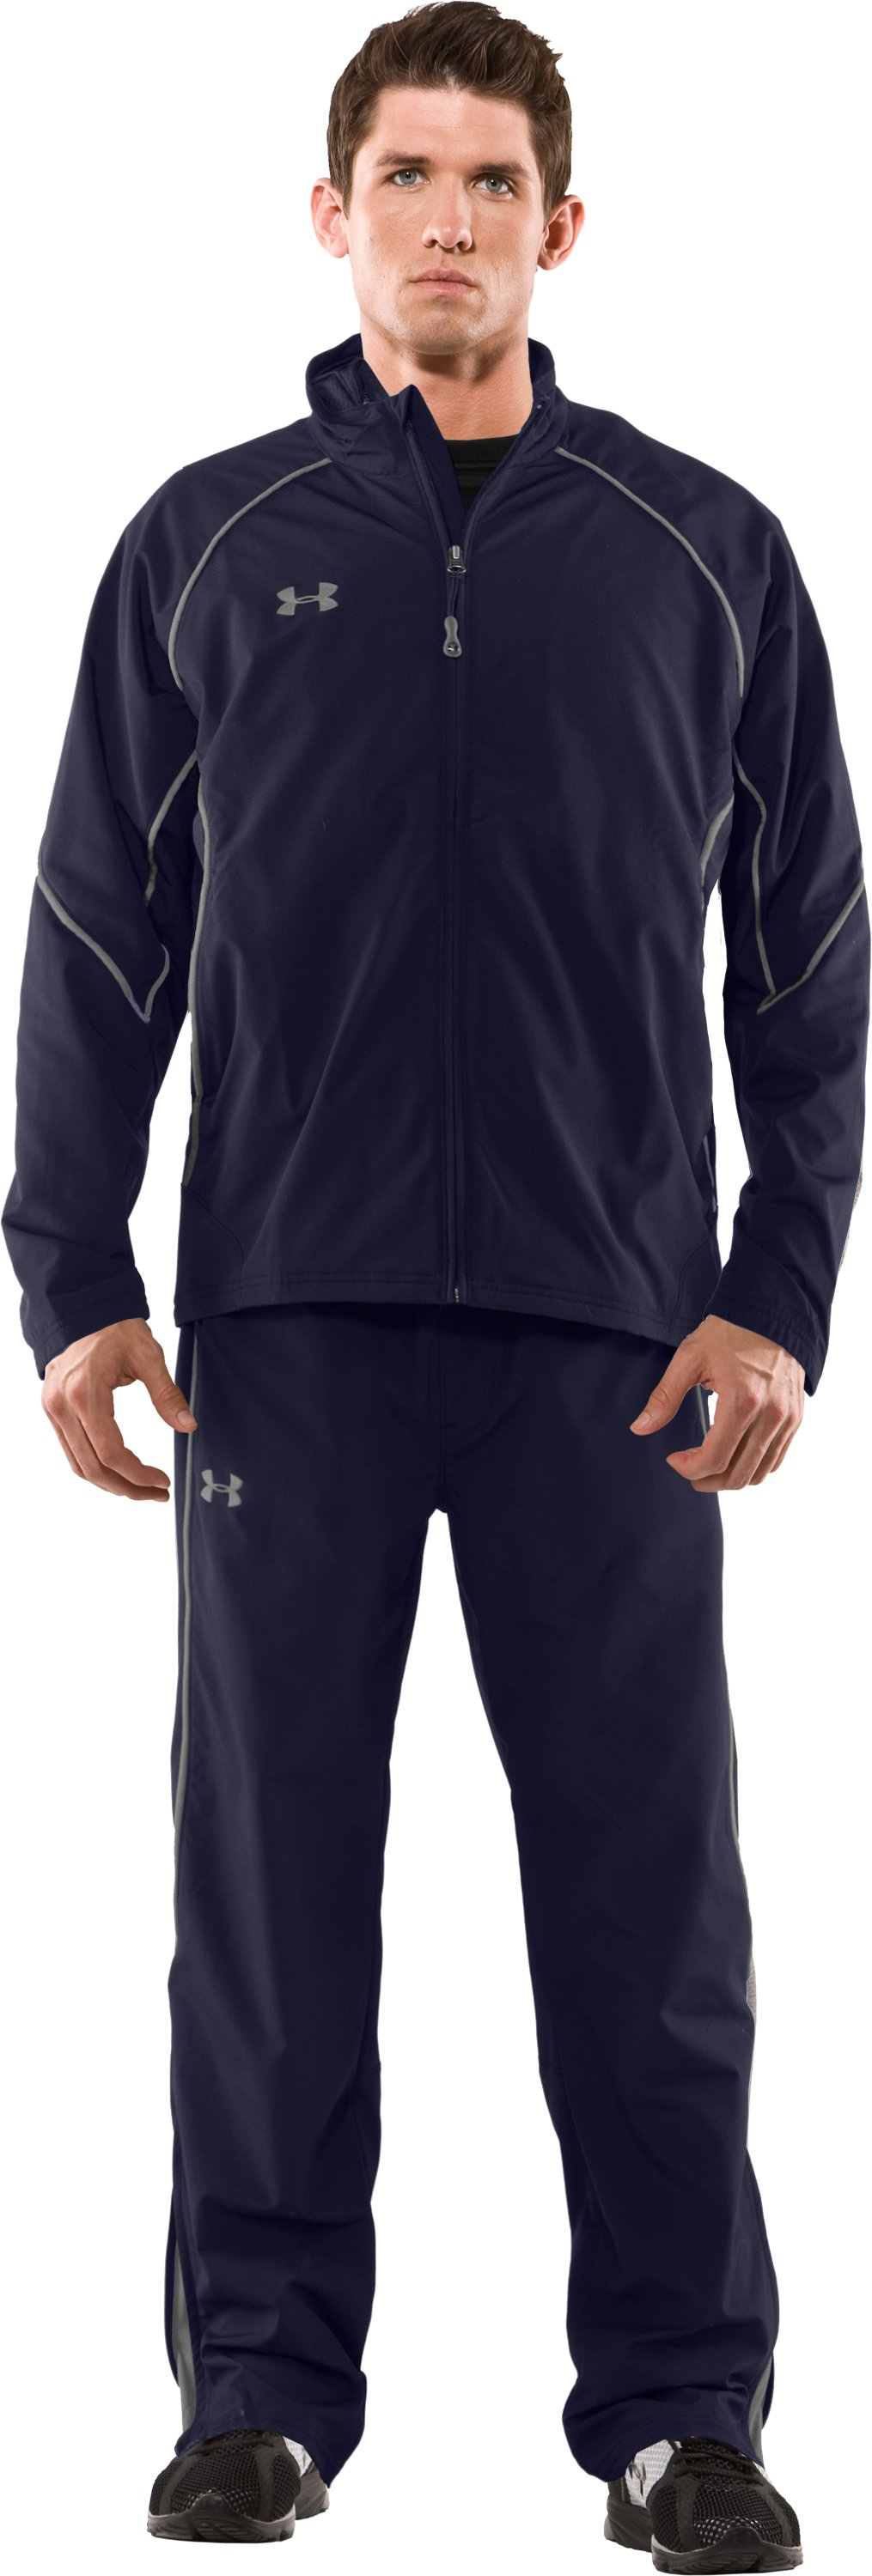 Men's UA Hockey Warm-Up Jacket, Midnight Navy